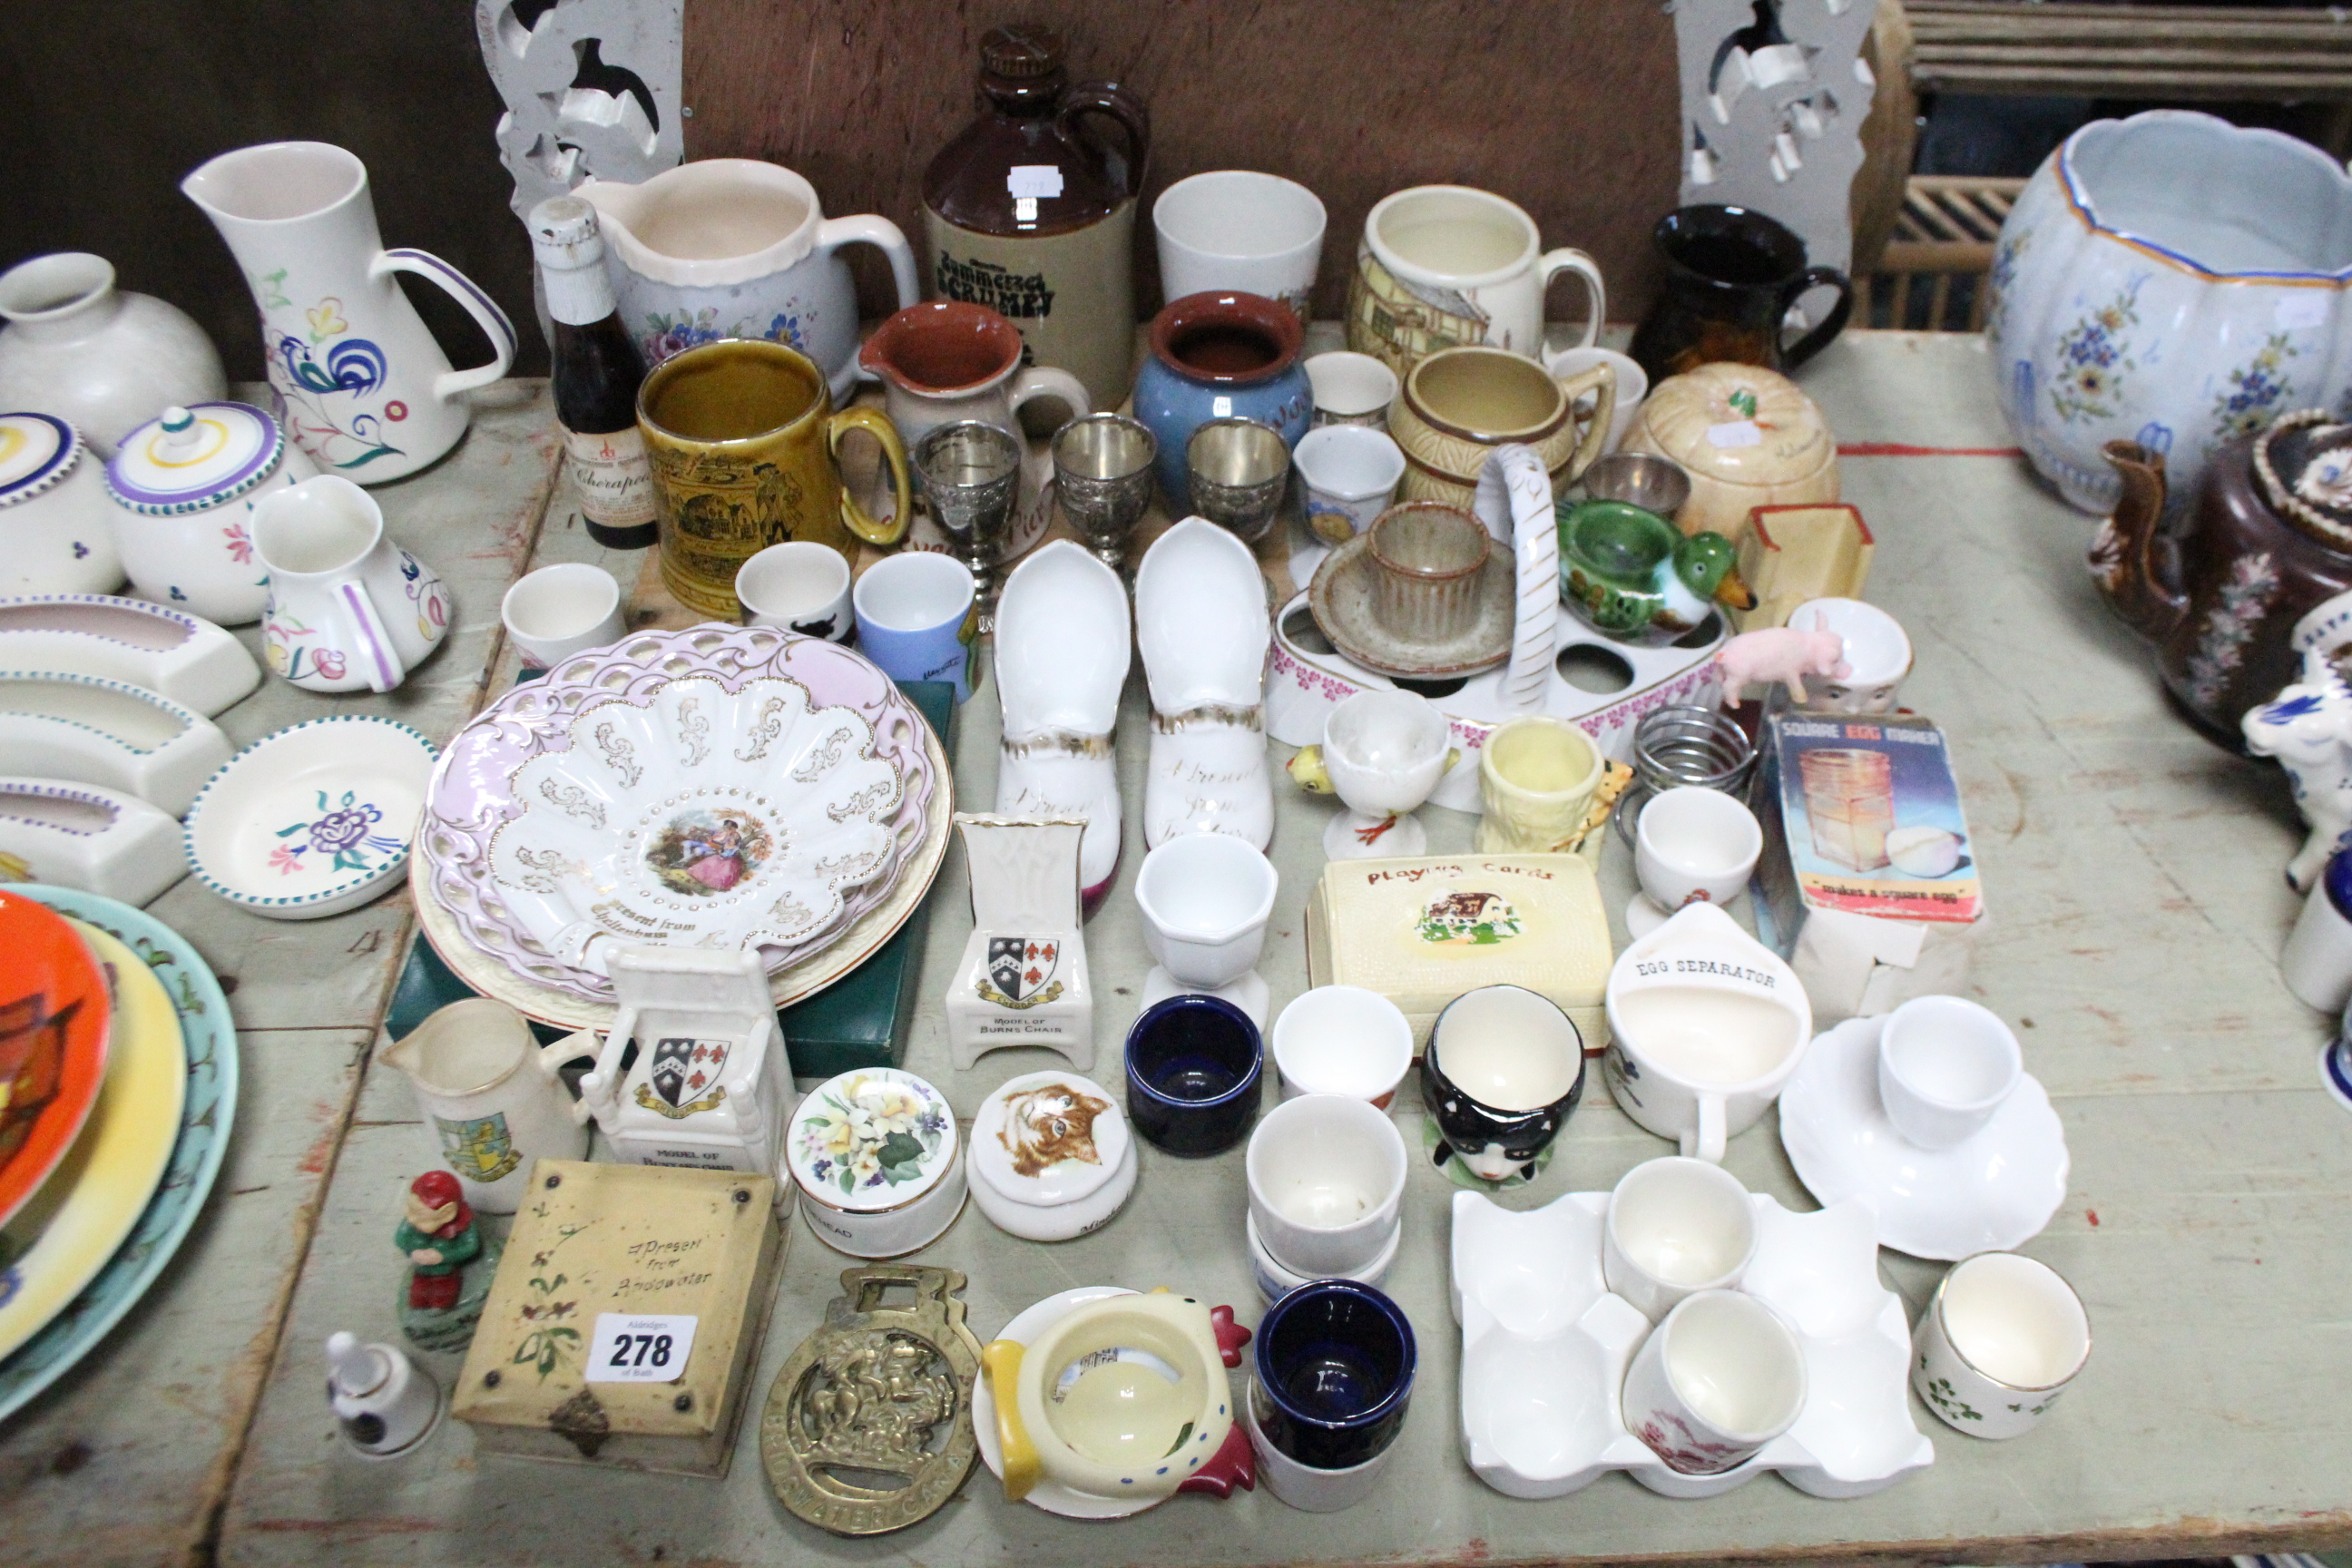 Lot 278 - A collection of egg cups; & various Somerset & Gloucestershire commemorative items.